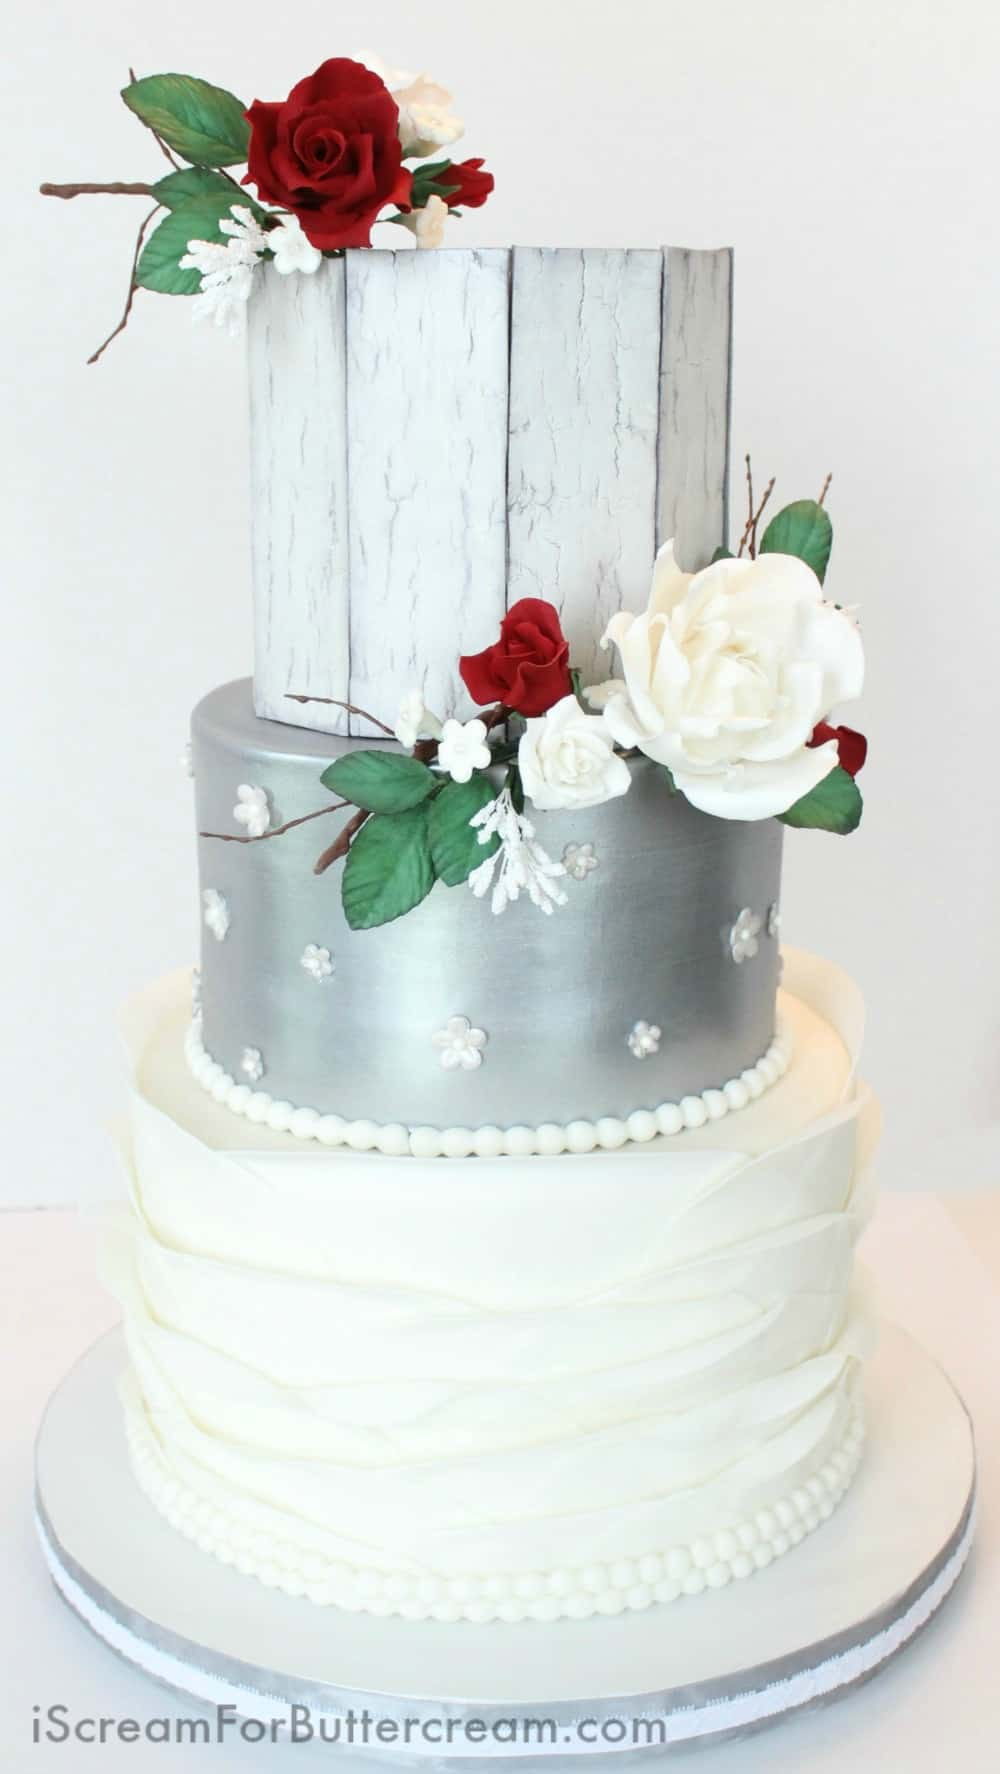 Elegant Rustic Silver Wedding Cake - I Scream for Buttercream